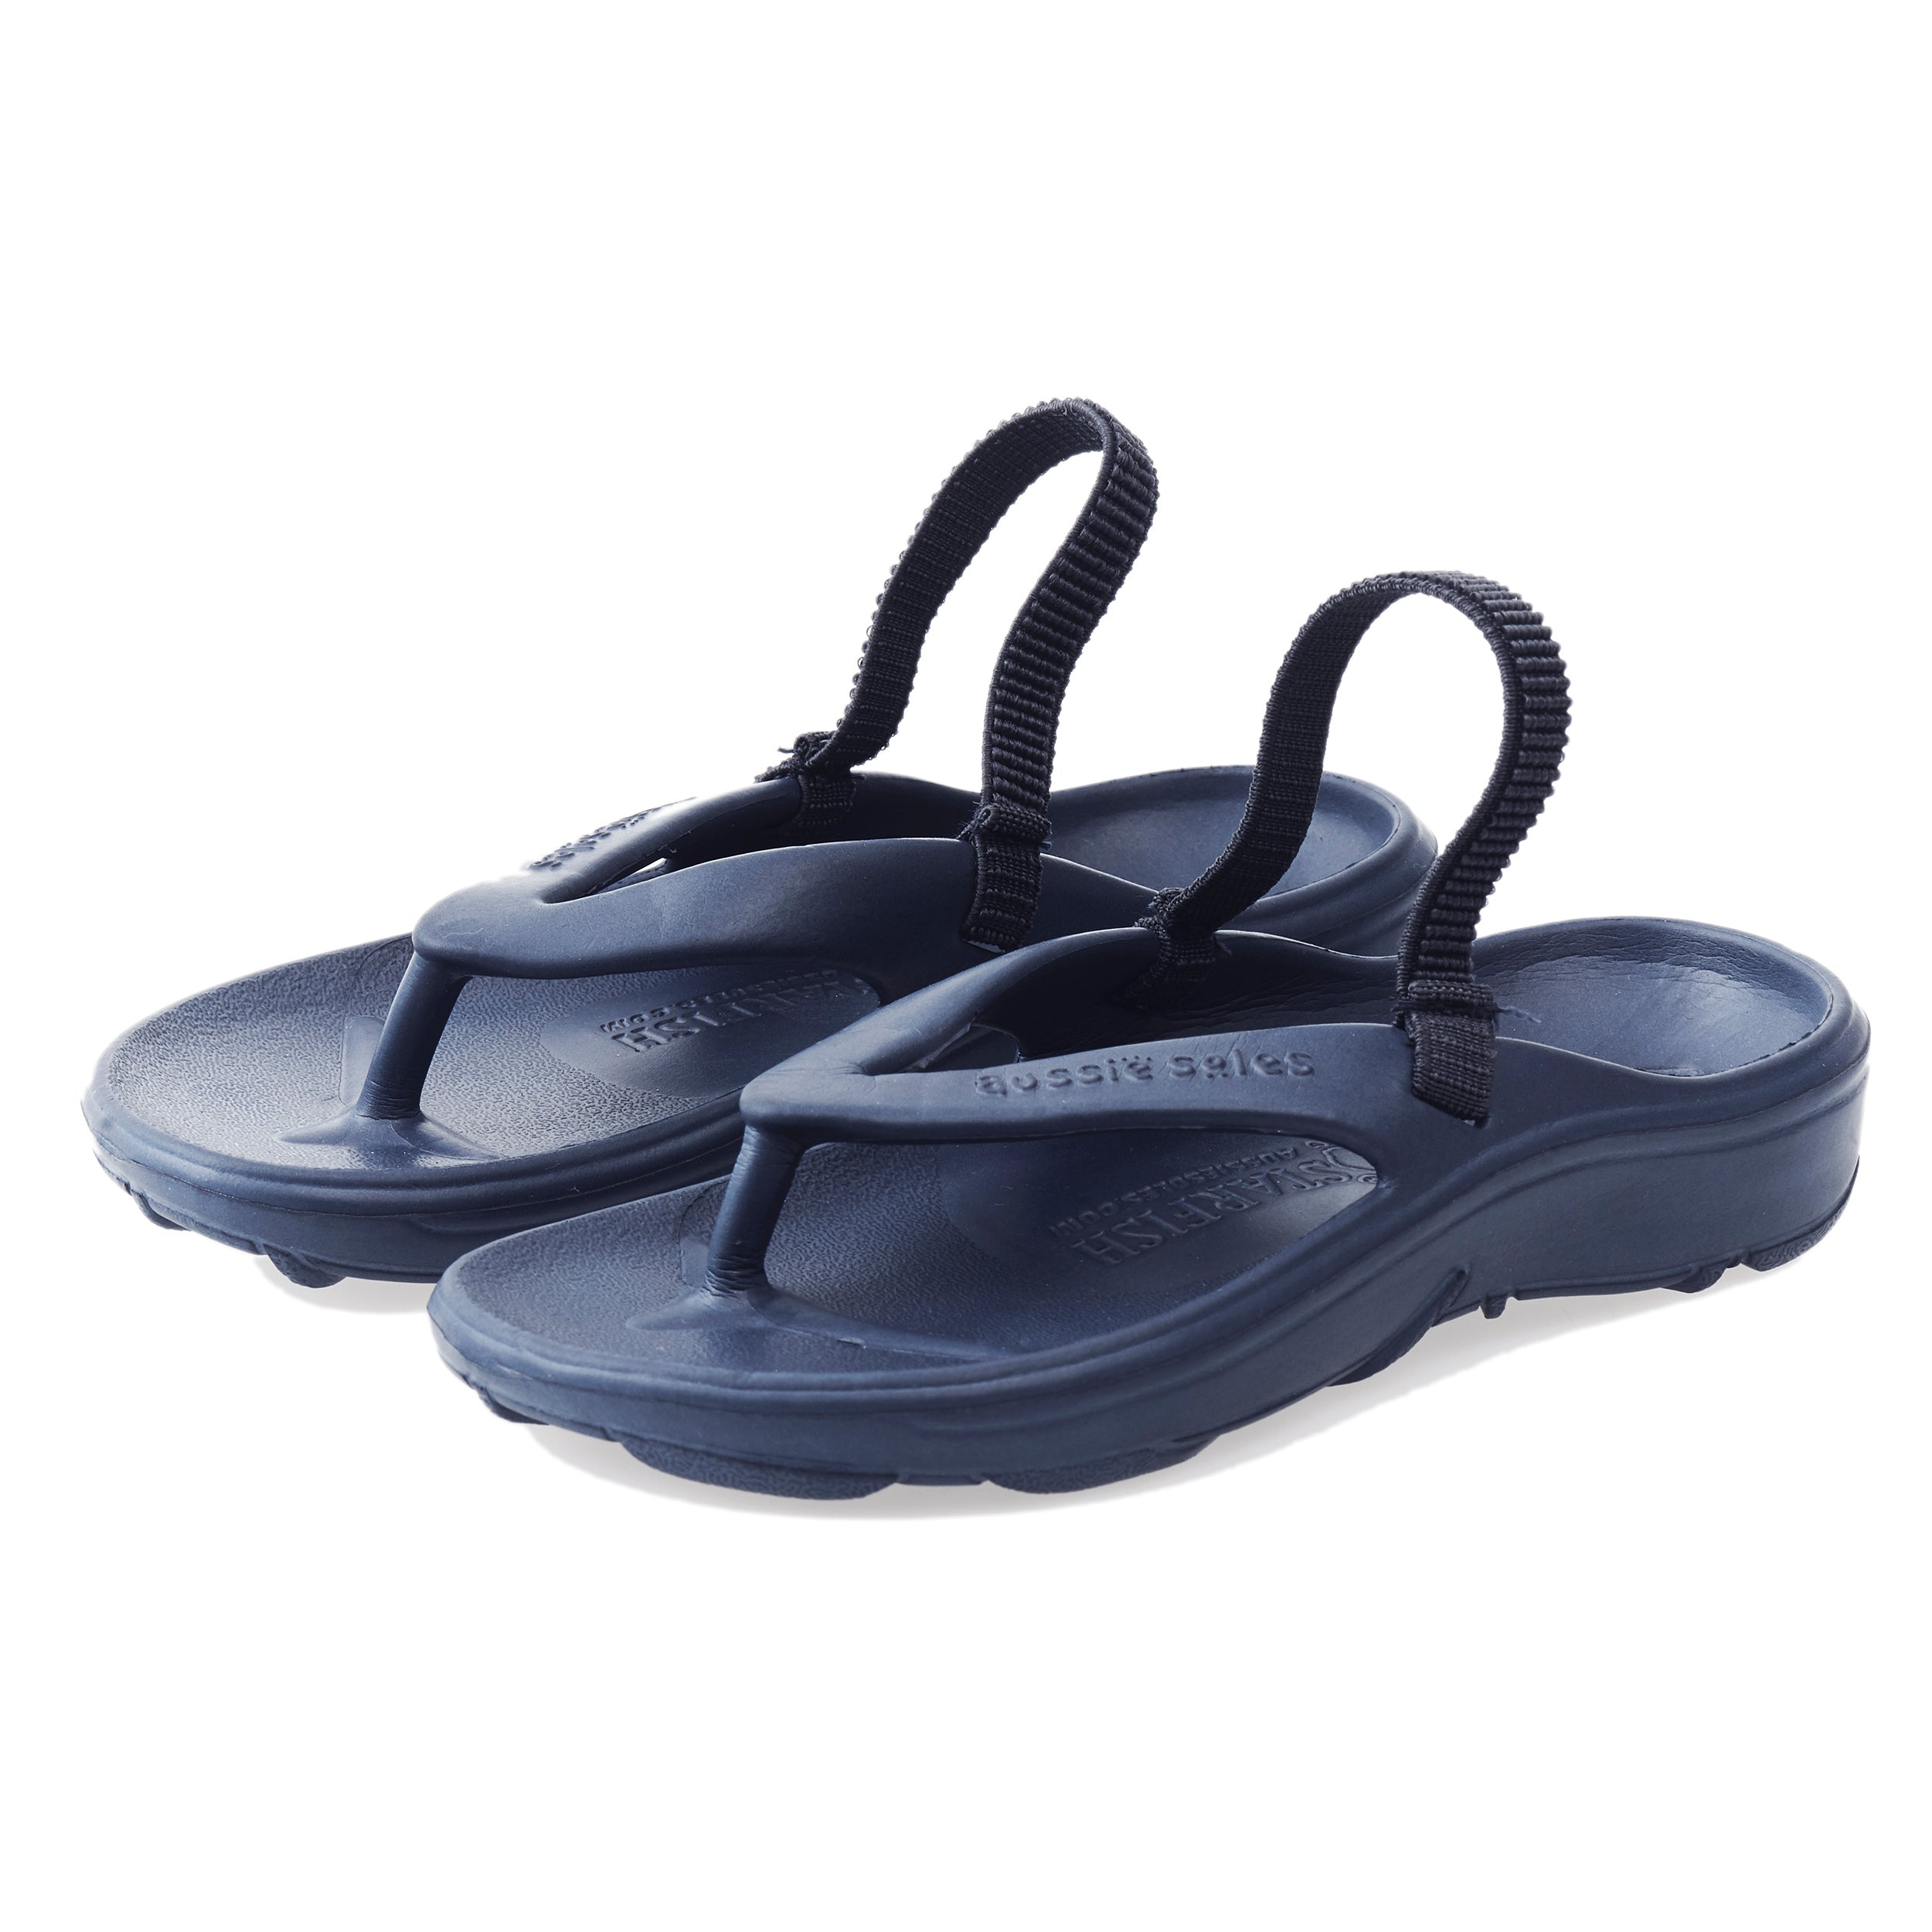 top-rated official factory outlet reasonable price Children's Flip-Flops With Arch Support: Aussie Soles ...